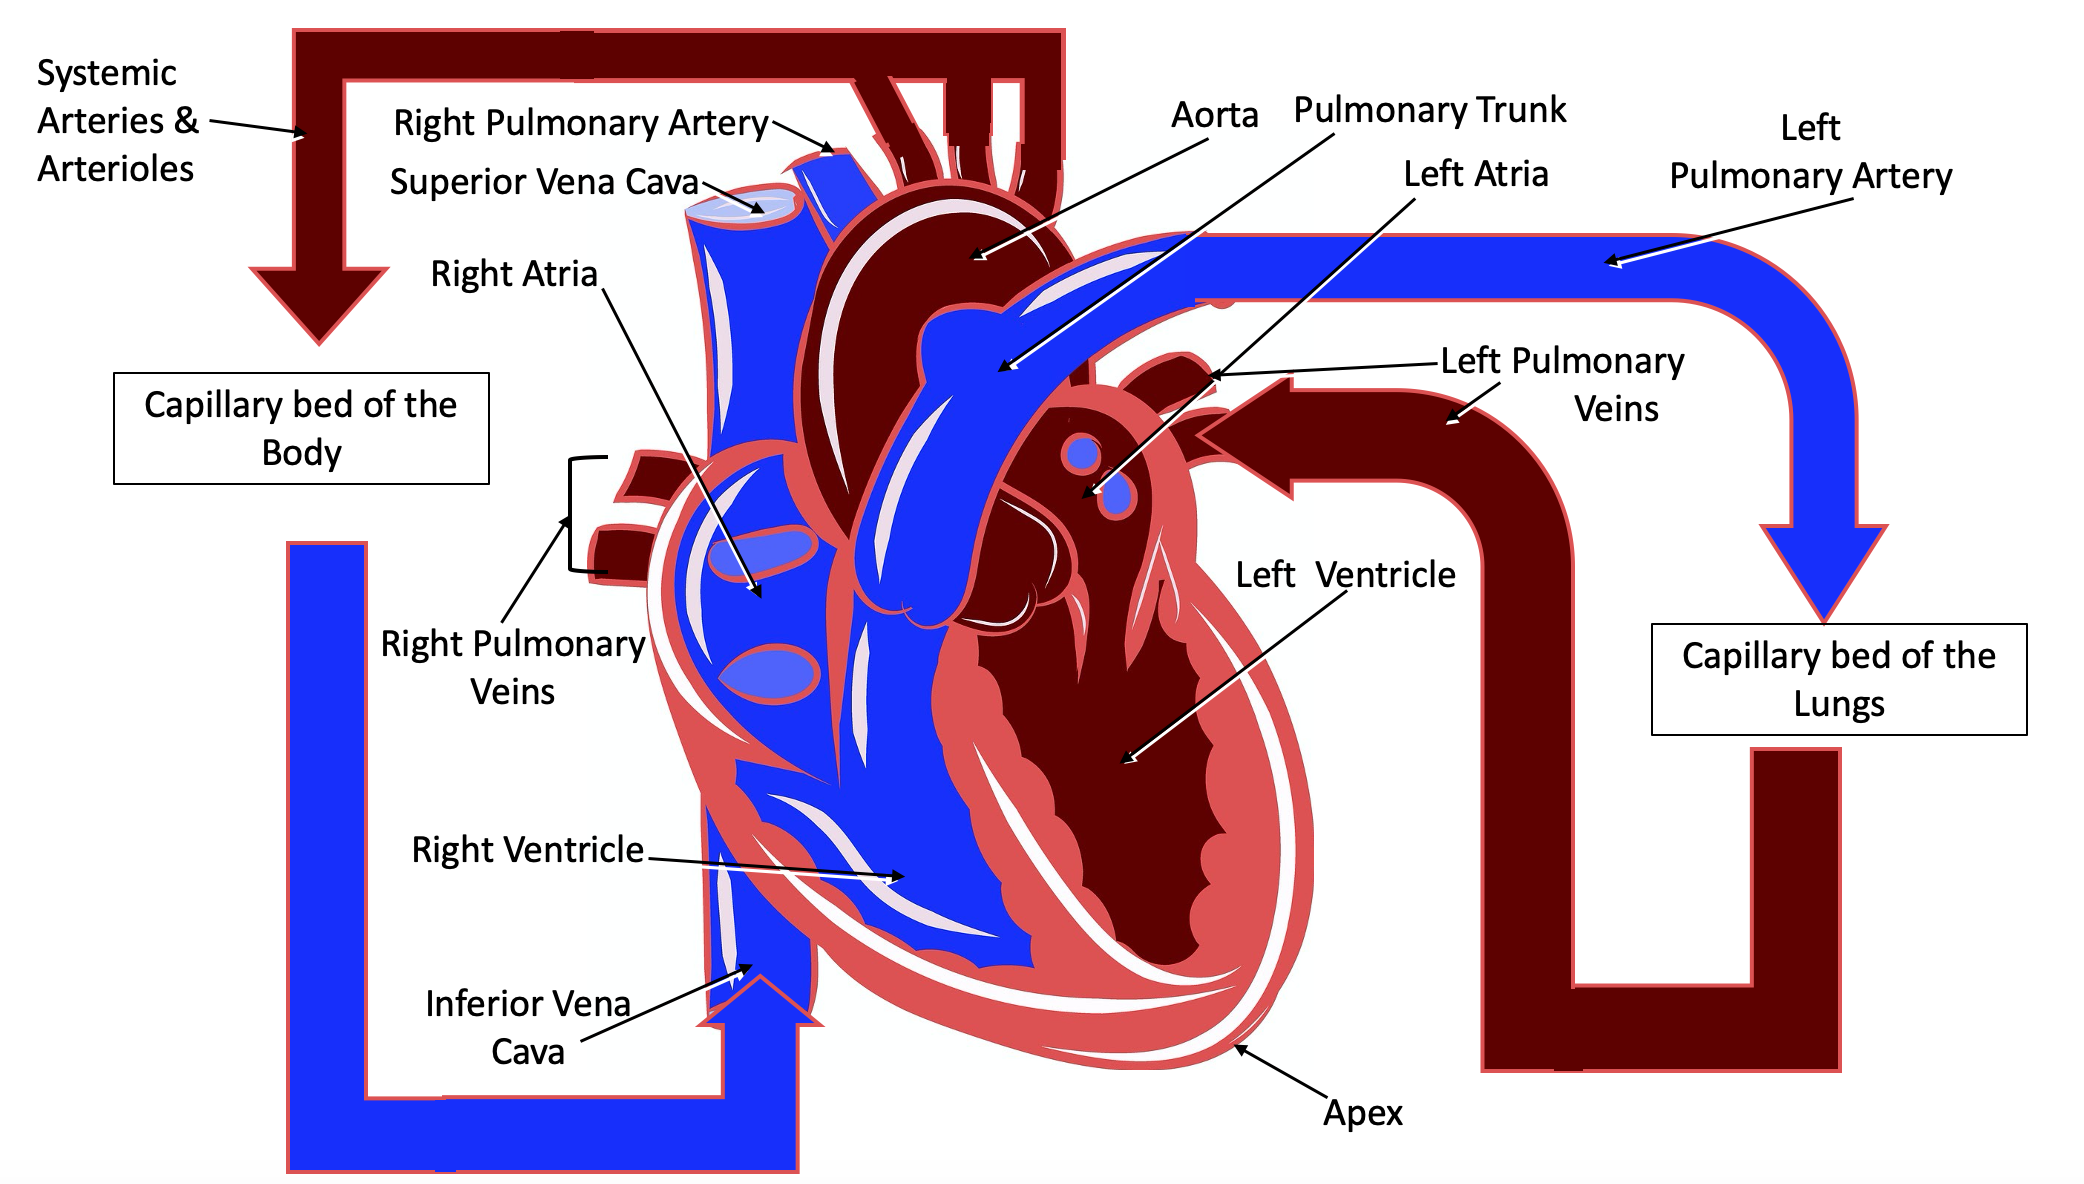 Image shows a ventral view of a human heart. The animation starts with a single red blood cell appearing in the blue right atria as the words right atria enlarge and shrink. The red blood cell moves into the blue right ventricle as the words right ventricle enlarge and shrink. The red blood cell then enters the blue pulmonary trunk as the words pulmonary trunk enlarge and shrink. The red blood cell then enters the left pulmonary artery as the words left pulmonary artery enlarge and shrink. The red blood cell then enters a box that reads capillary bed of the lungs as the words capillary bed of the lungs enlarge and shrink. The red blood cell then enters the red pulmonary veins as the words pulmonary vein enlarge and shrink. The red blood cell then enters the red left ventricle as the words left ventricle enlarge and shrink. The red blood cell then enters the red aorta as the word aorta enlarges and shrinks. The red blood cell then enters the red Systemic arteries and arterioles as the words systemic arteries and arterioles enlarge and shrink. The red blood cell then enters a box that reads capillary bed of the body as the words capillary bed of the body enlarge and shrink. The red blood cell then enters the blue Systemic venules and veins as the words systemic venules and veins enlarge and shrink. The red blood cell then enters the blue inferior vena cava as the words inferior vena cava enlarge and shrink. Finally the red blood cell returns to the blue right atria where it started.